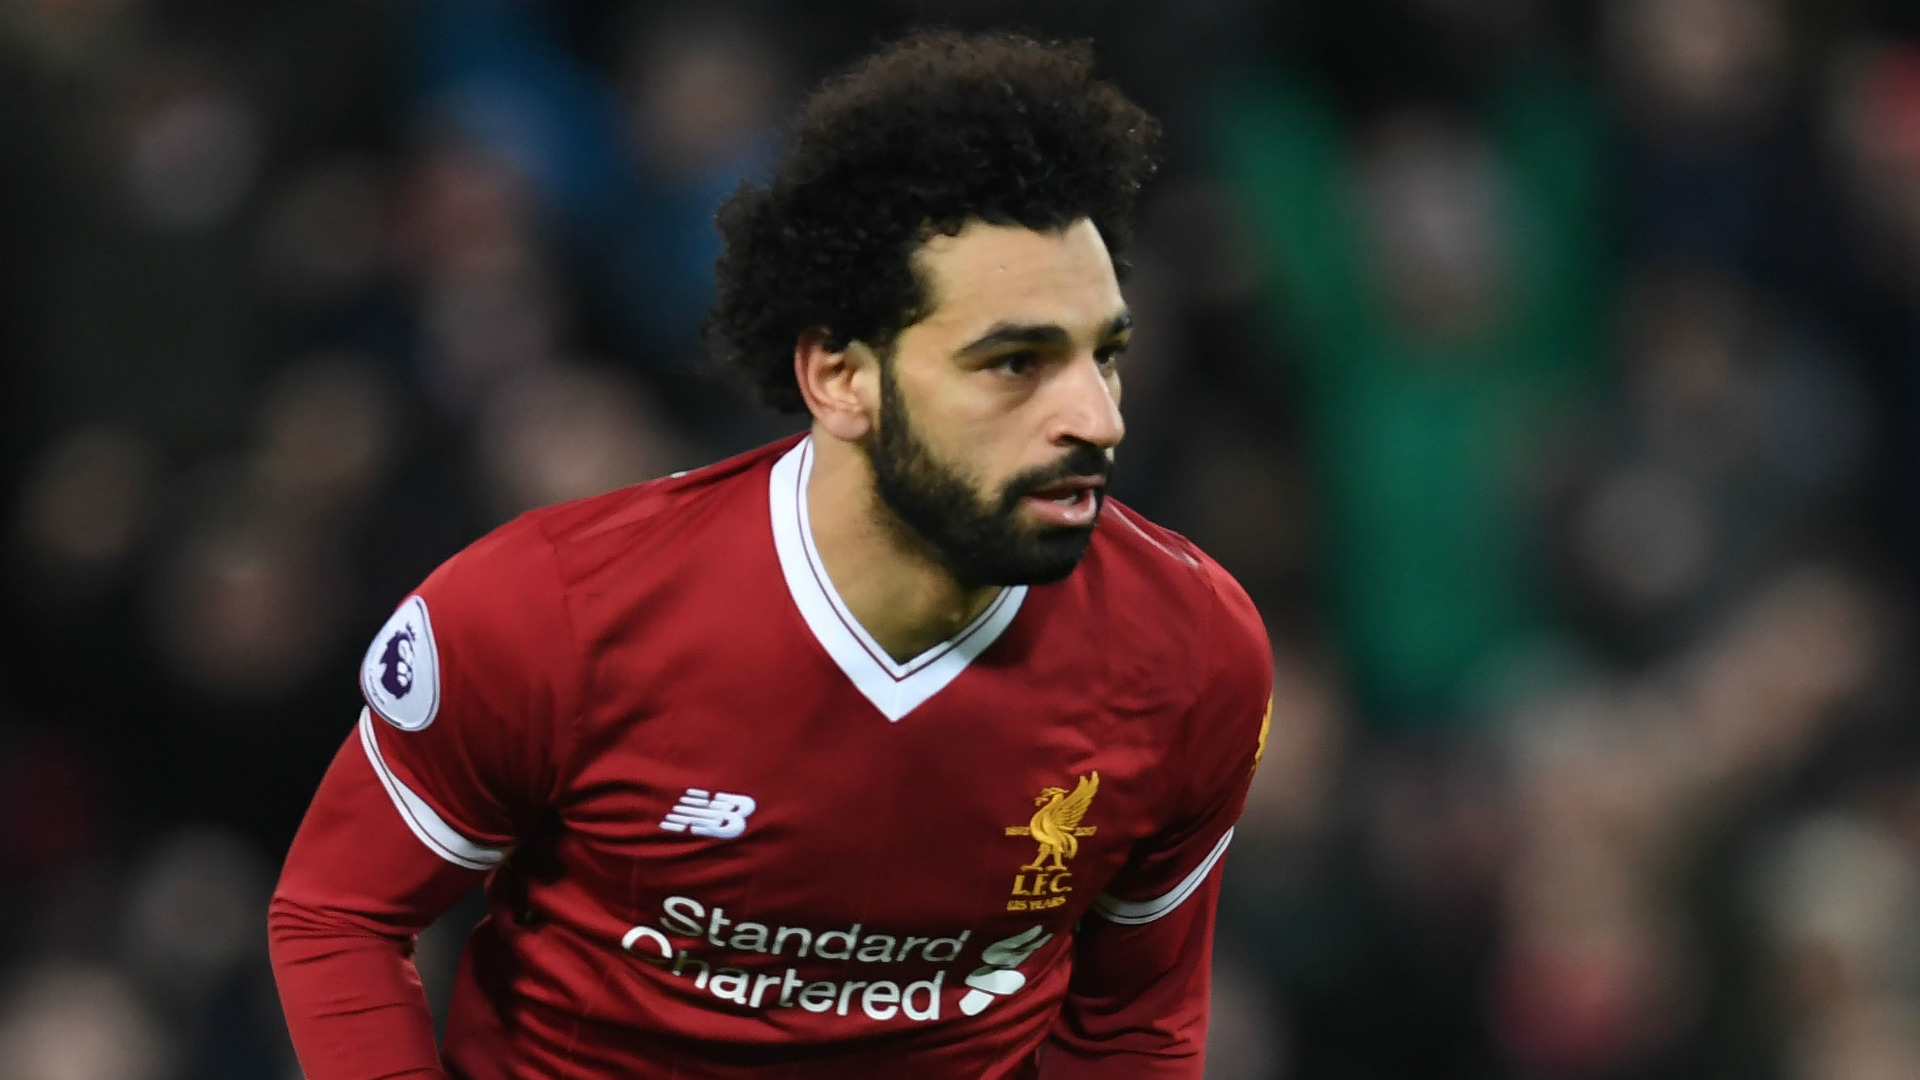 Mohamed Salah named 2017 Caf African Player of the Year ...